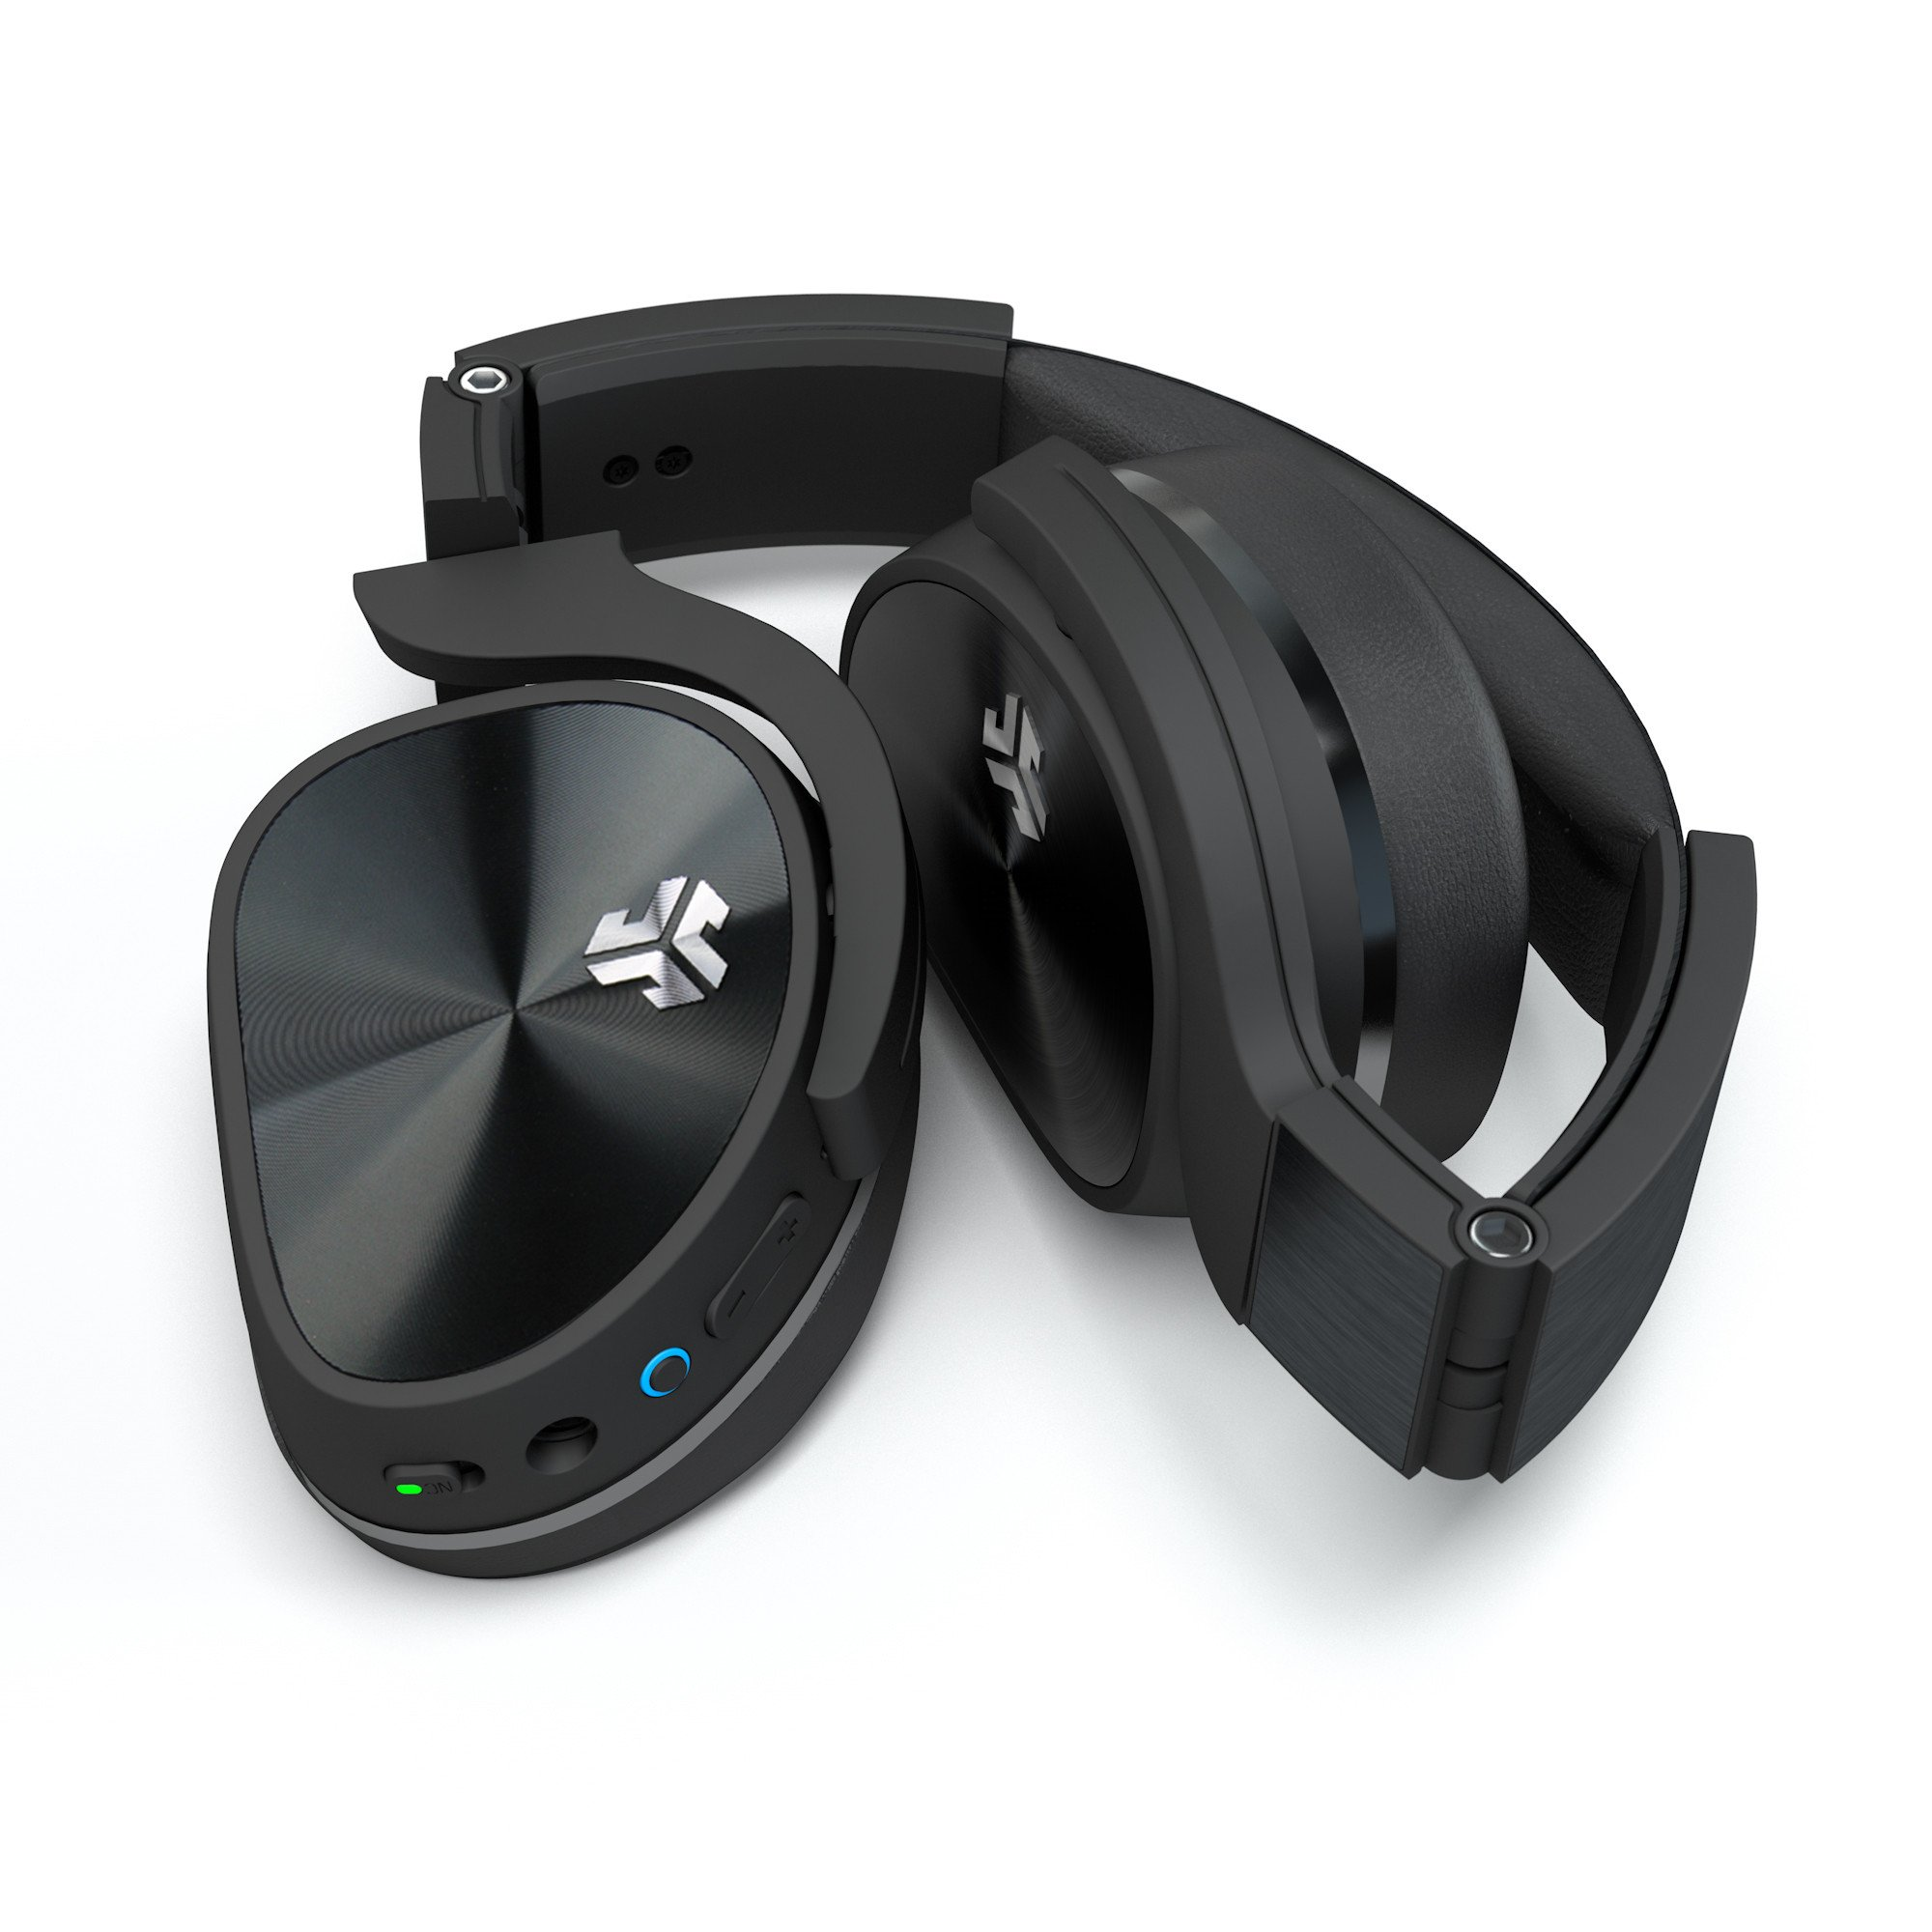 JLab Flex Bluetooth Wireless Headphone Review